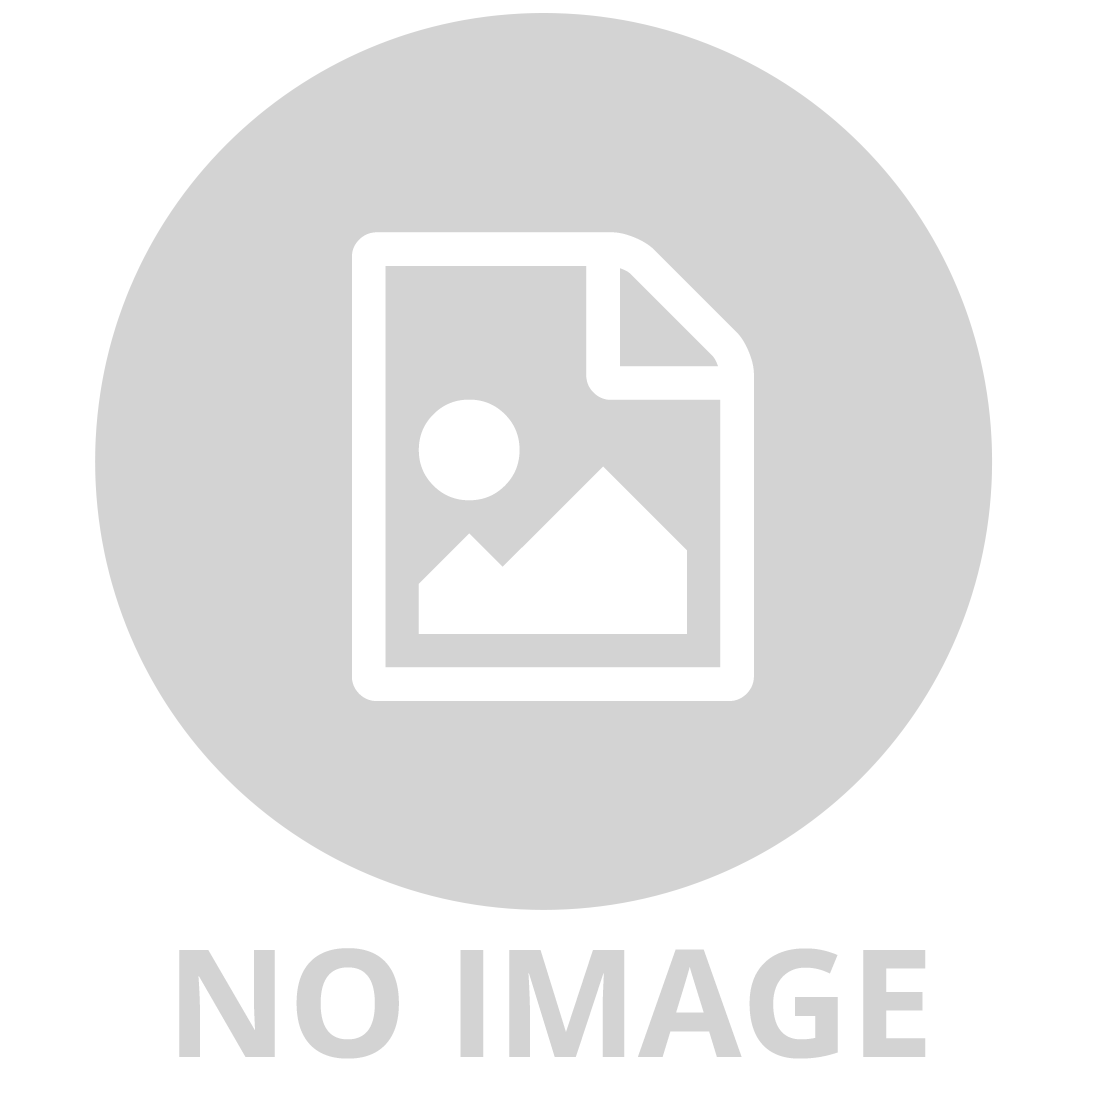 TAMIYA TS 14 BLACK SPRAY PAINT FOR PLASTICS